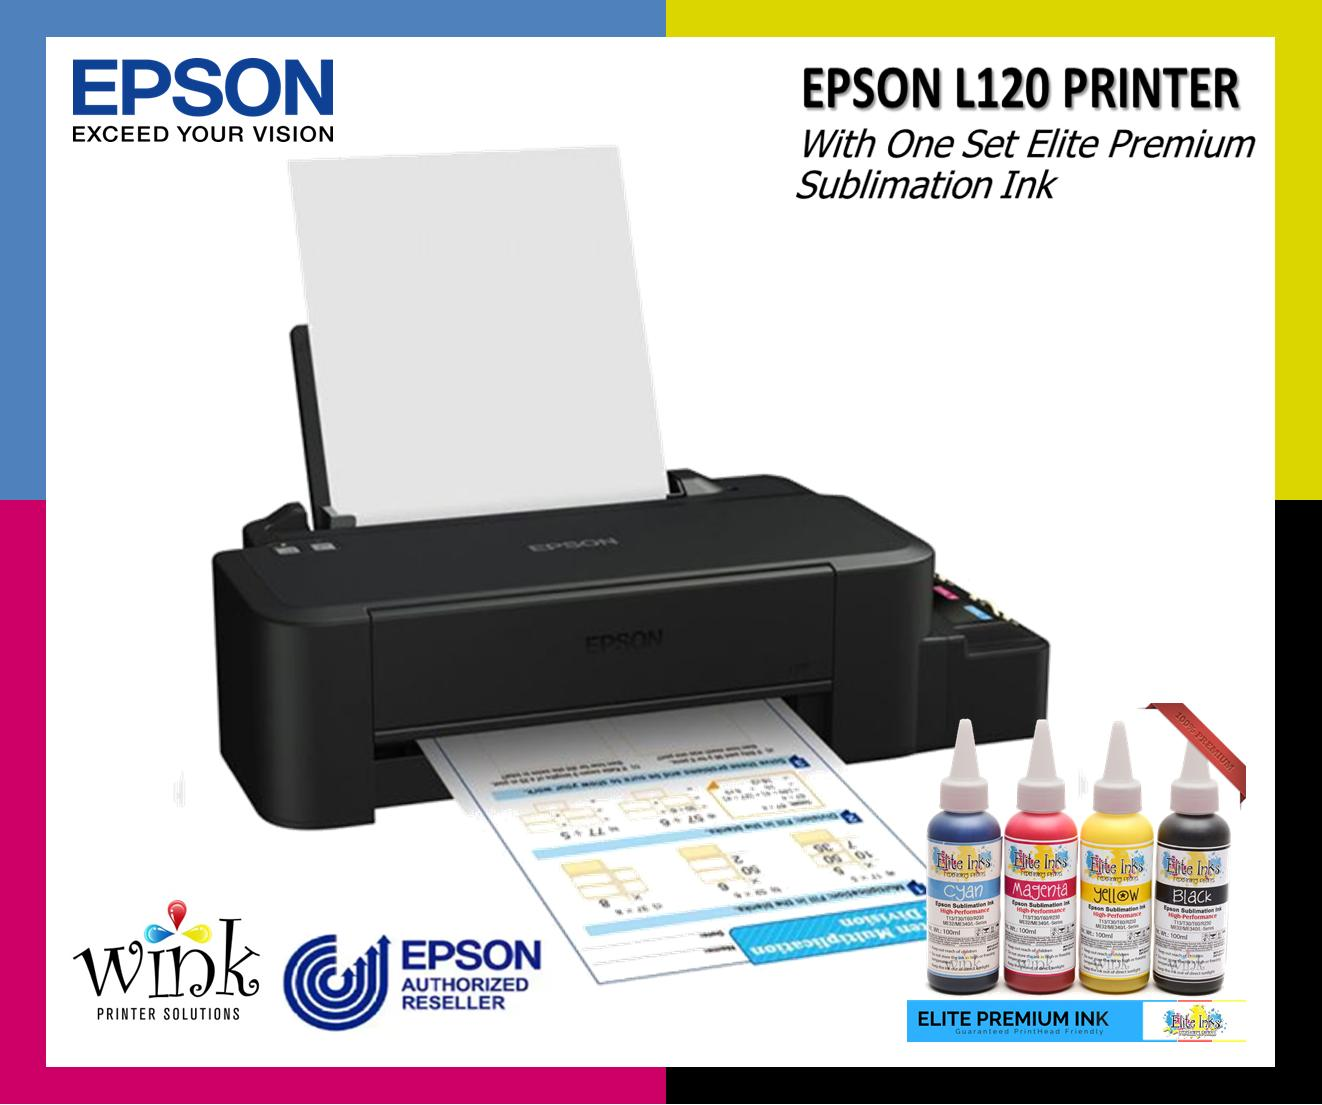 Epson L120 with Elite Premium Sublimation Inks - Printer Package